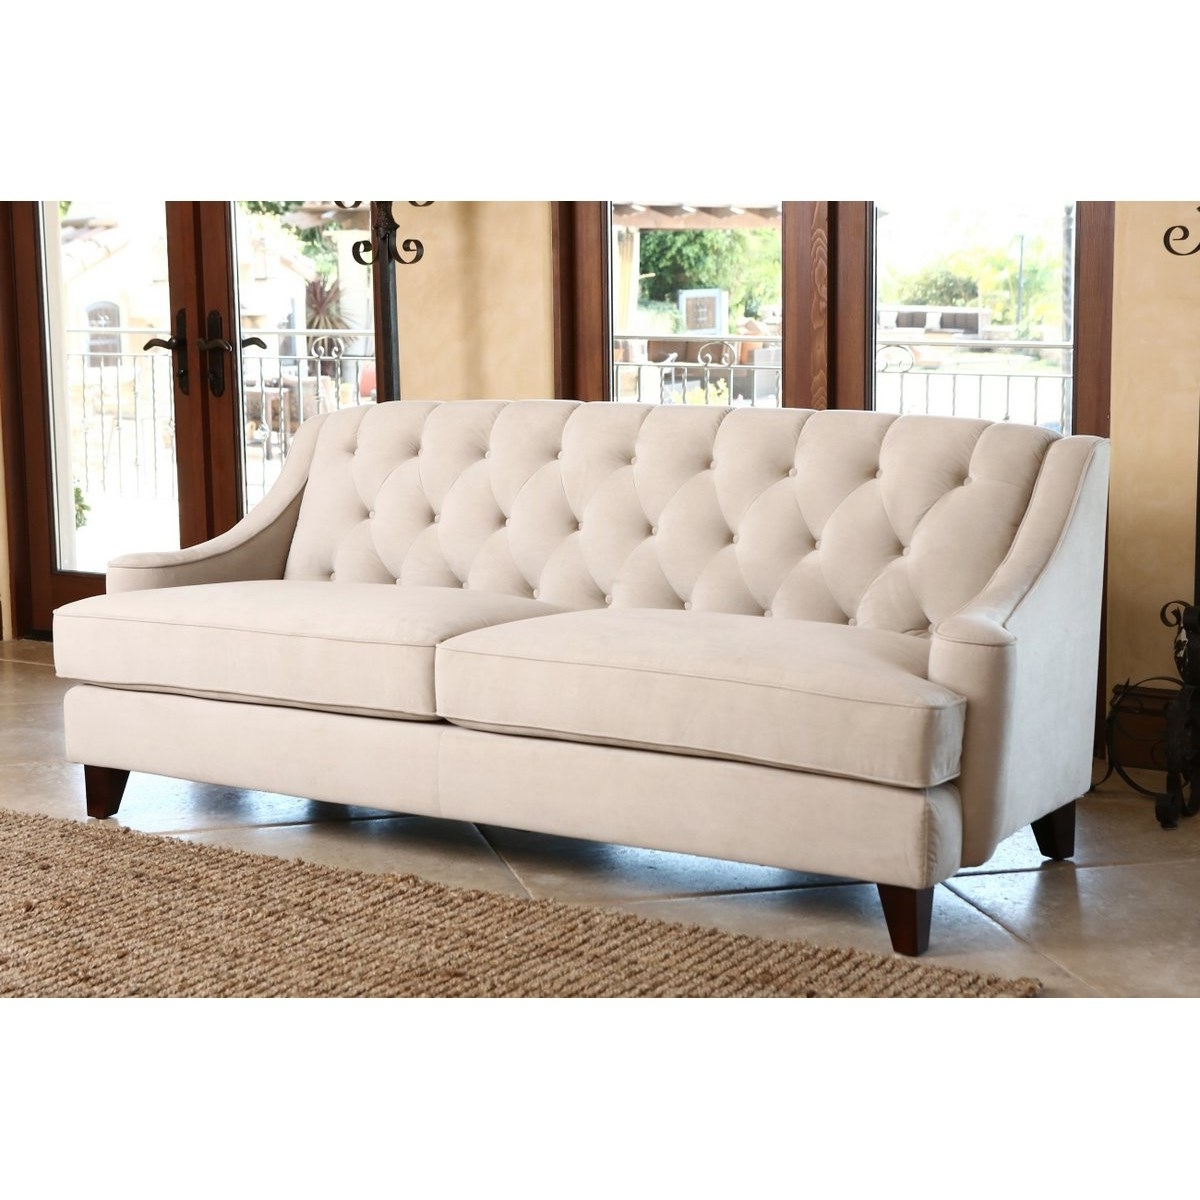 Furniture : Kijiji Sofa On Sale Oxford Tufted Sectional Sofa Regarding Famous Quad Cities Sectional Sofas (View 8 of 20)